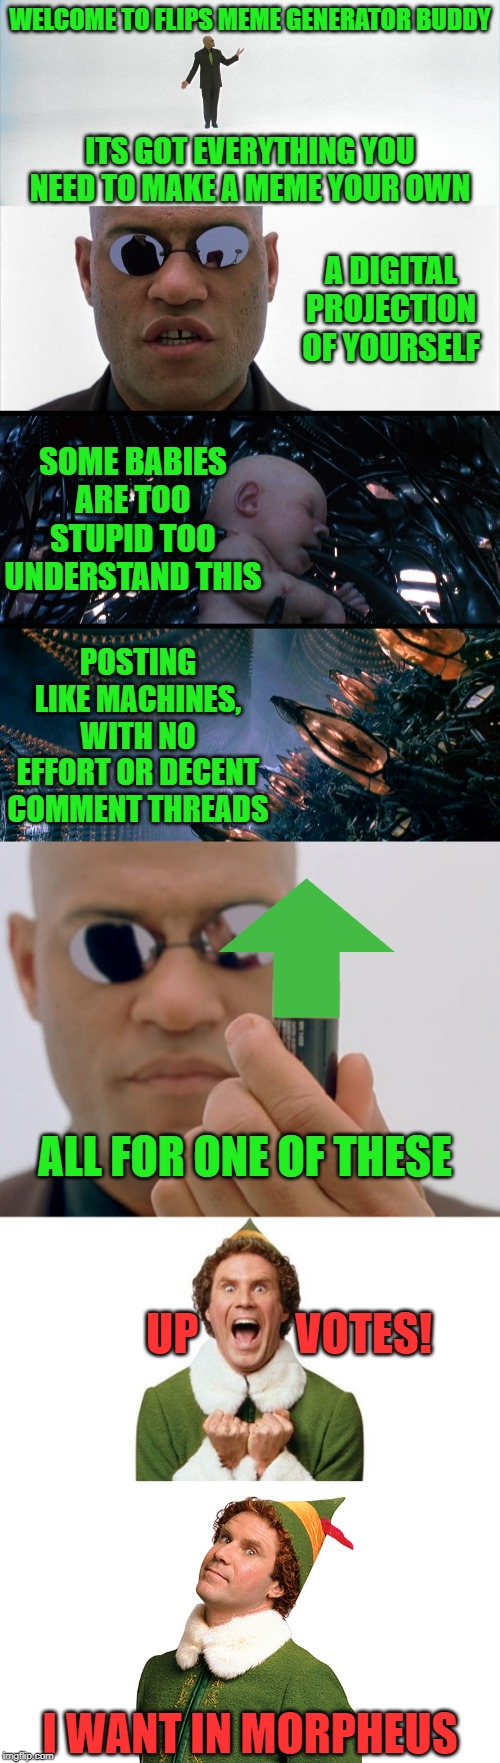 OK Buddy? | WELCOME TO FLIPS MEME GENERATOR BUDDY I WANT IN MORPHEUS ITS GOT EVERYTHING YOU NEED TO MAKE A MEME YOUR OWN A DIGITAL PROJECTION OF YOURSEL | image tagged in matrix morpheus,buddy the elf,memes,meme war,reposts are lame,original meme | made w/ Imgflip meme maker